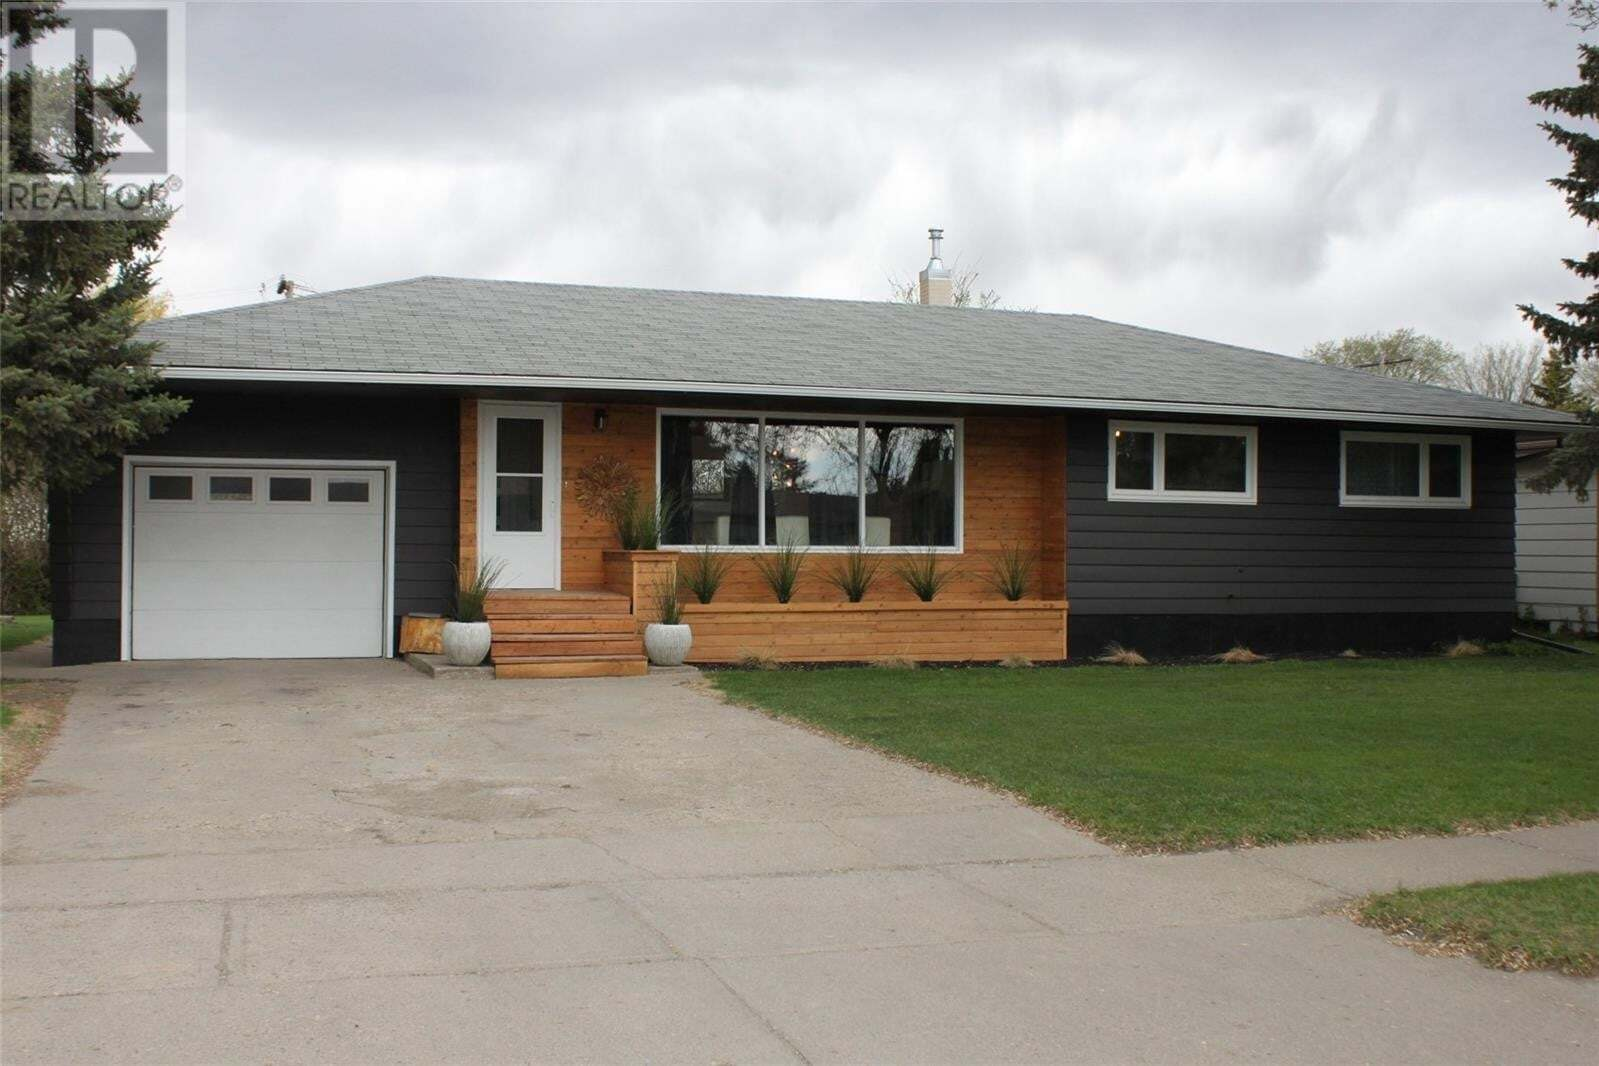 House for sale at 1119 Main St Canora Saskatchewan - MLS: SK809434